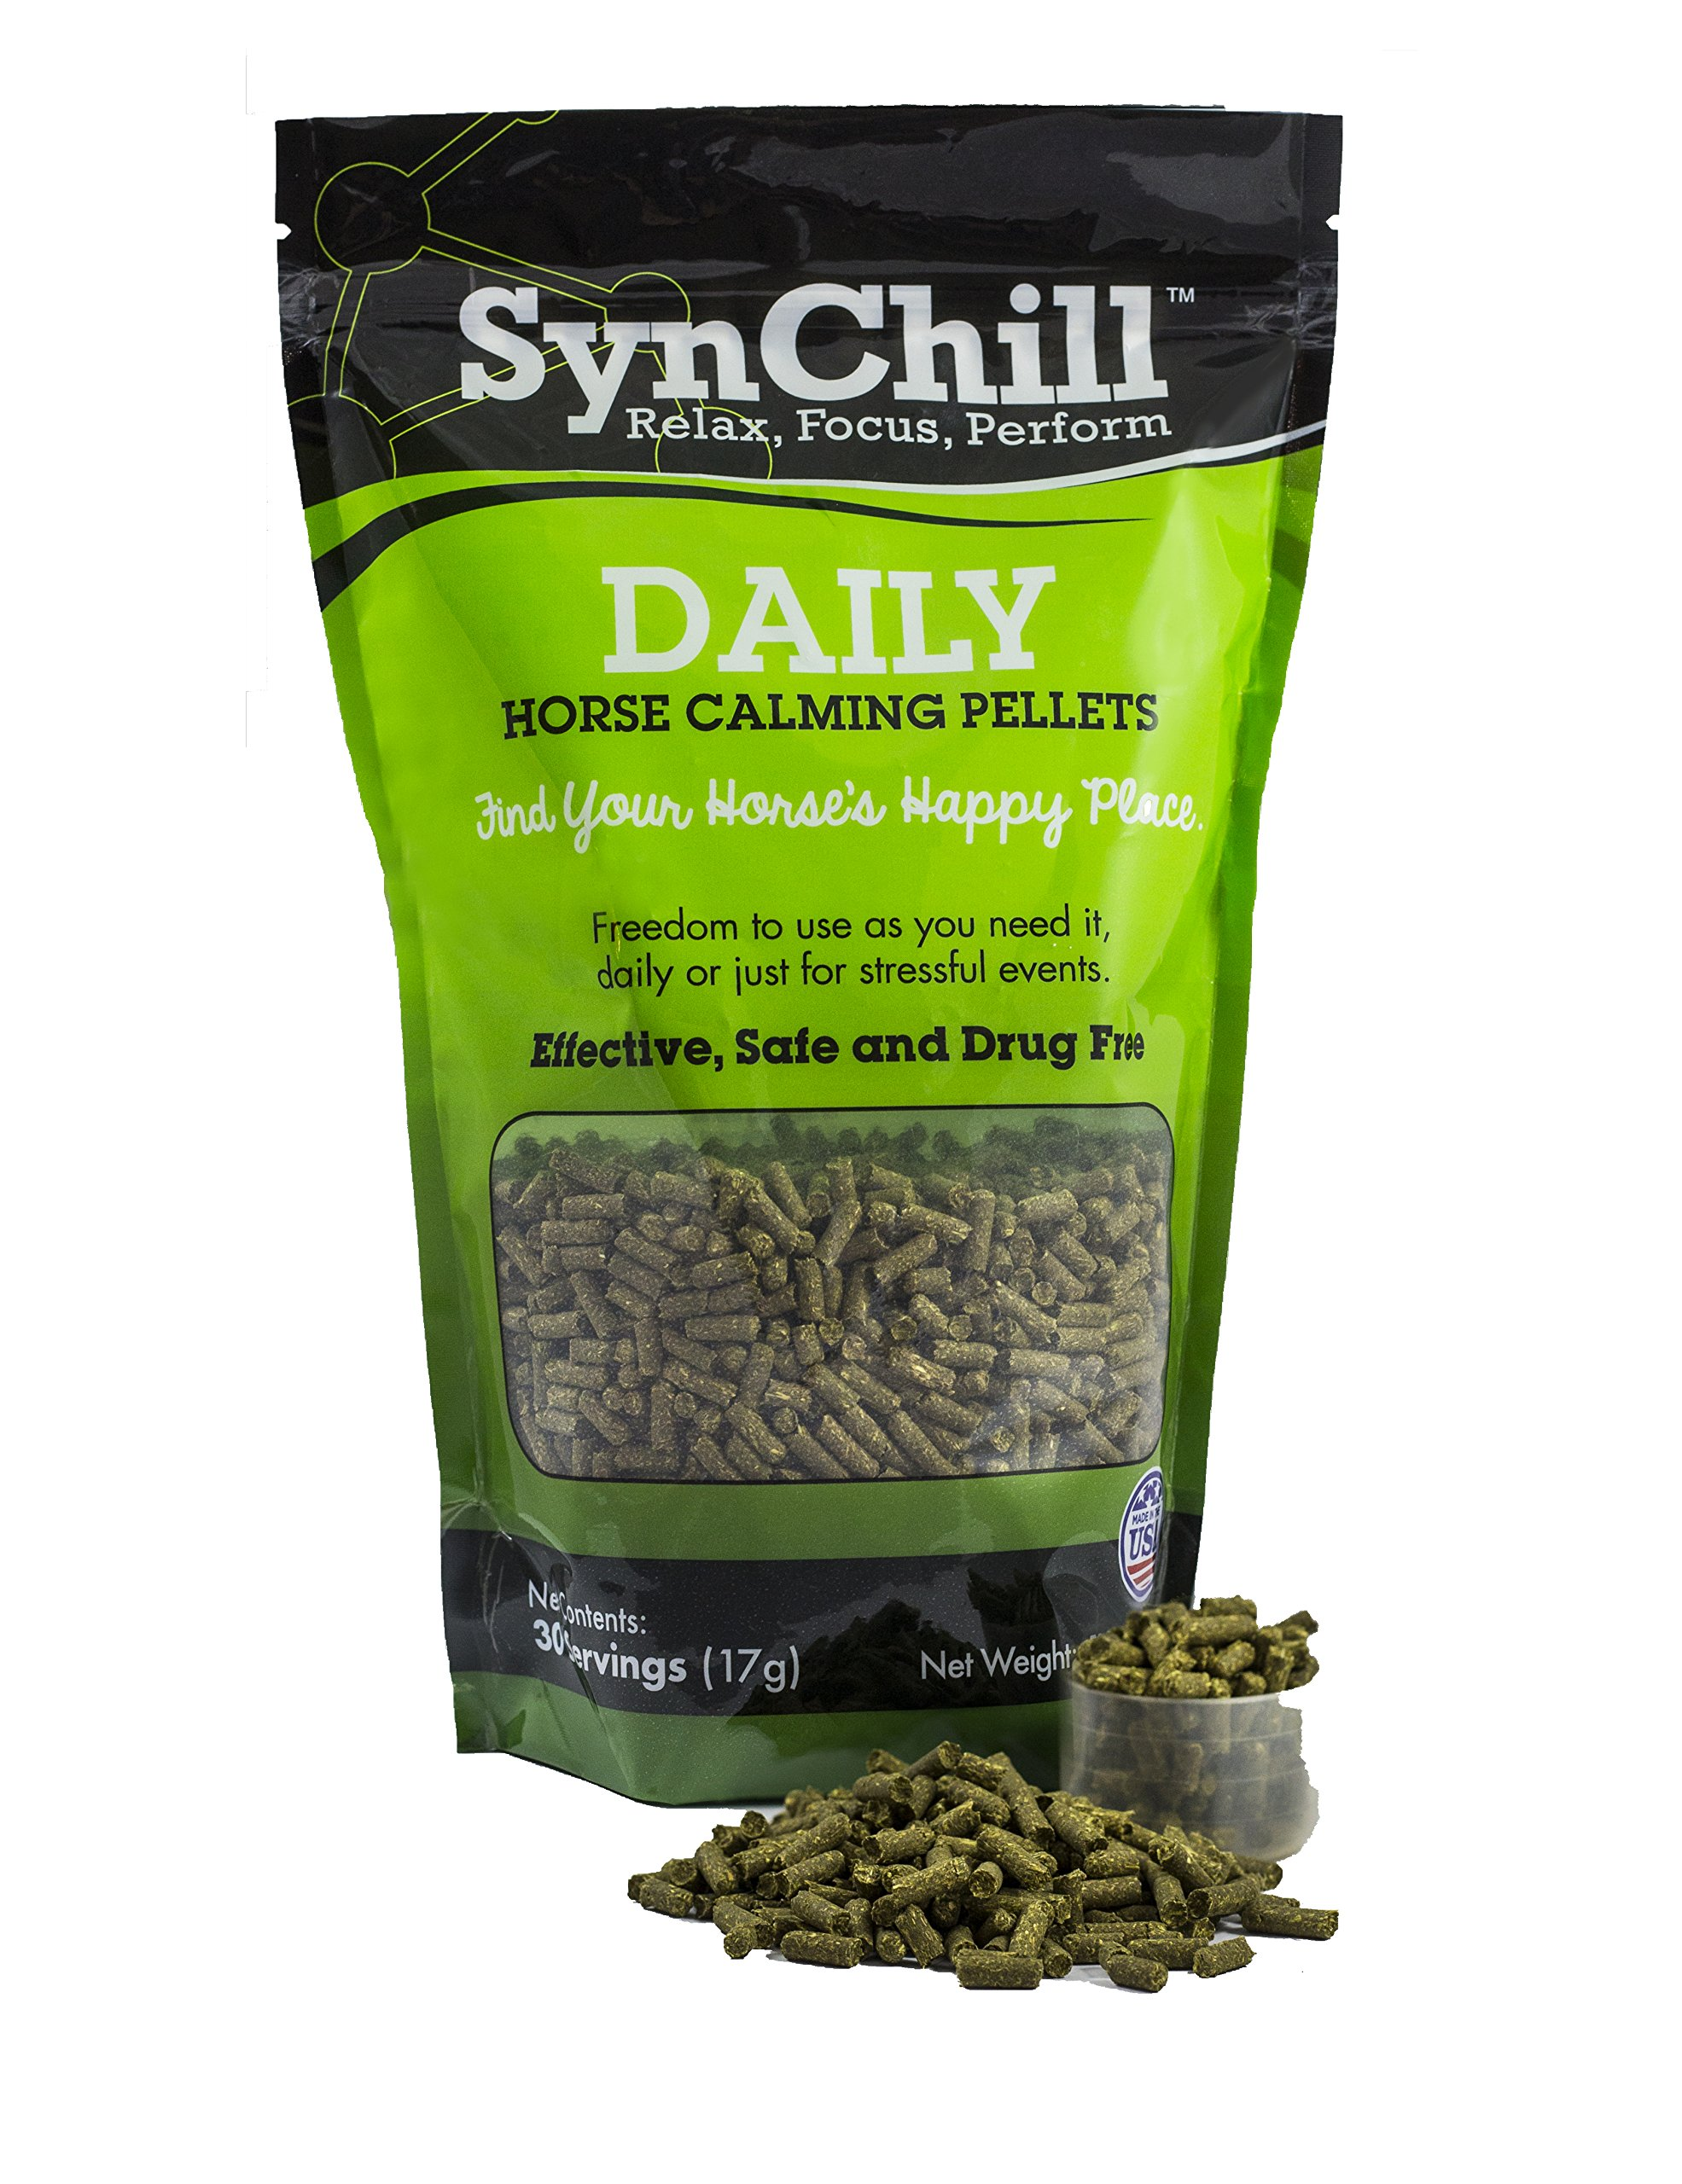 SynChill Daily Horse Calming Pellets by SynNutra